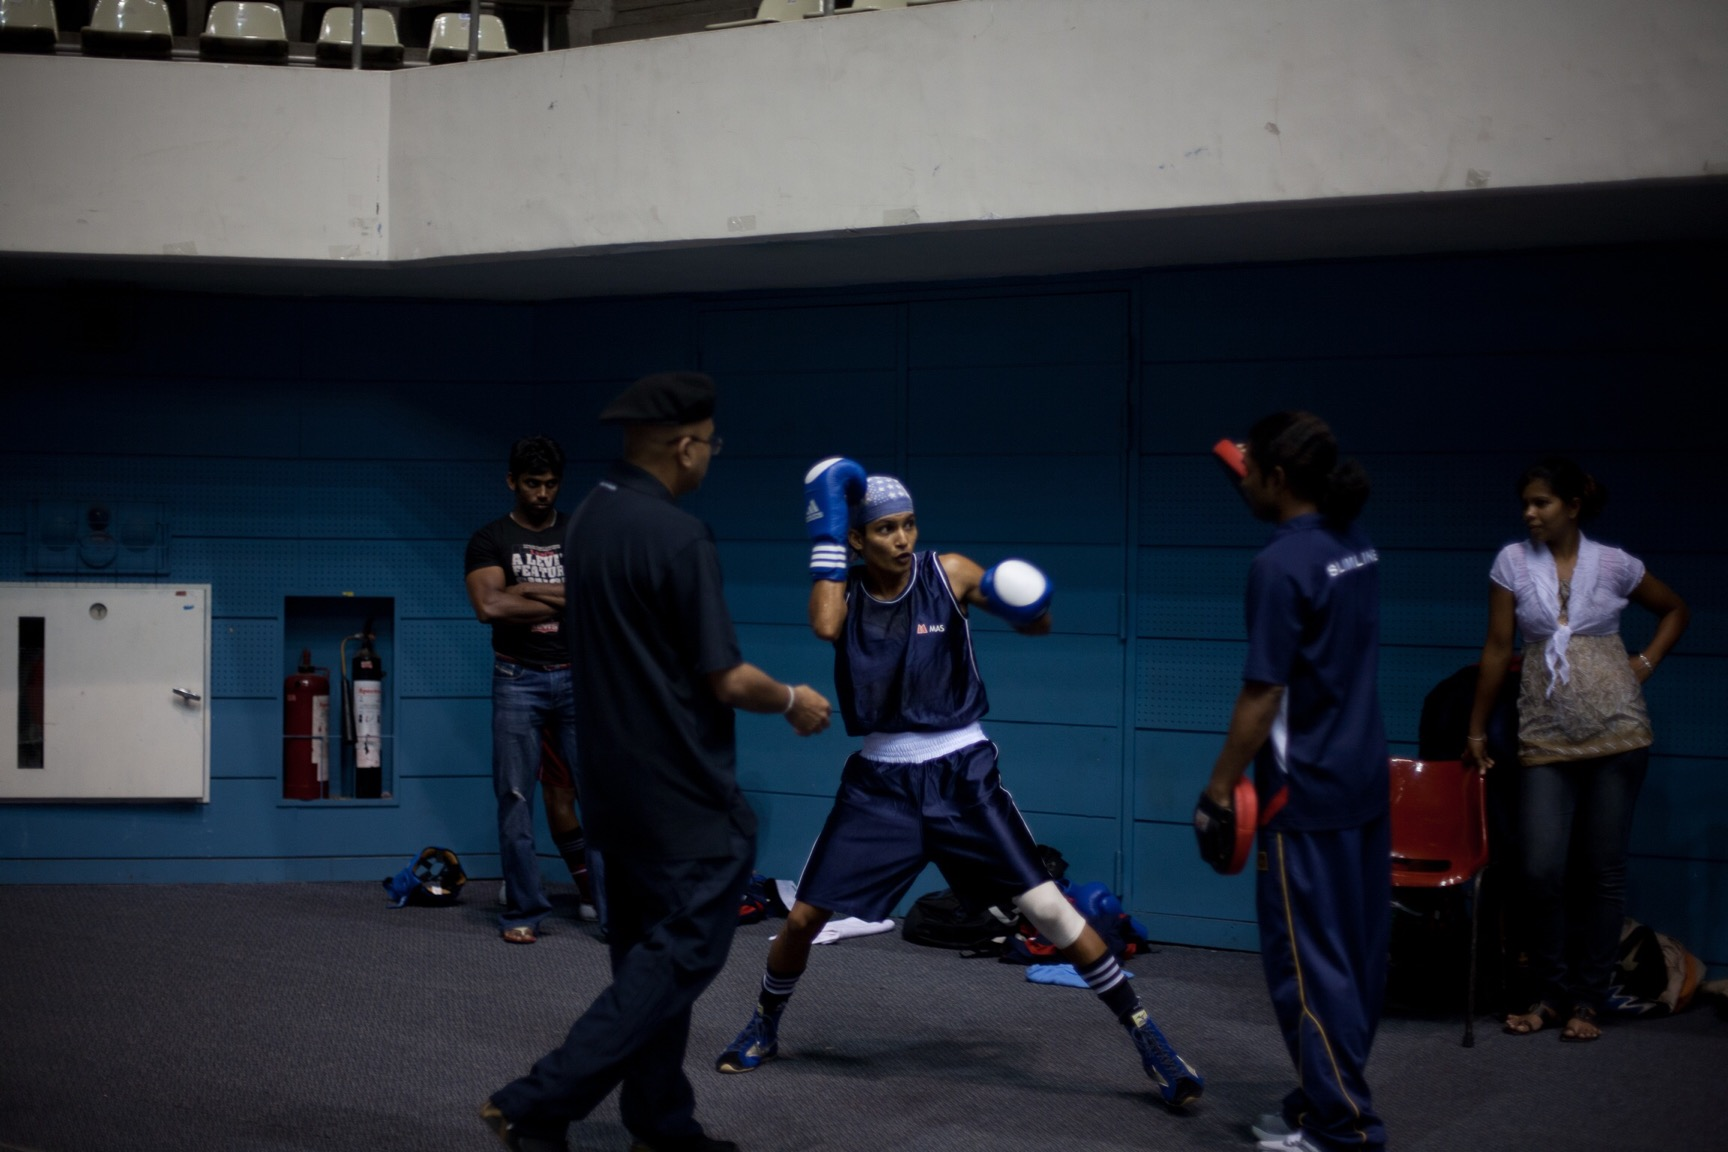 Anusha Kodituwakku warming up (© Lee Bazalgette)